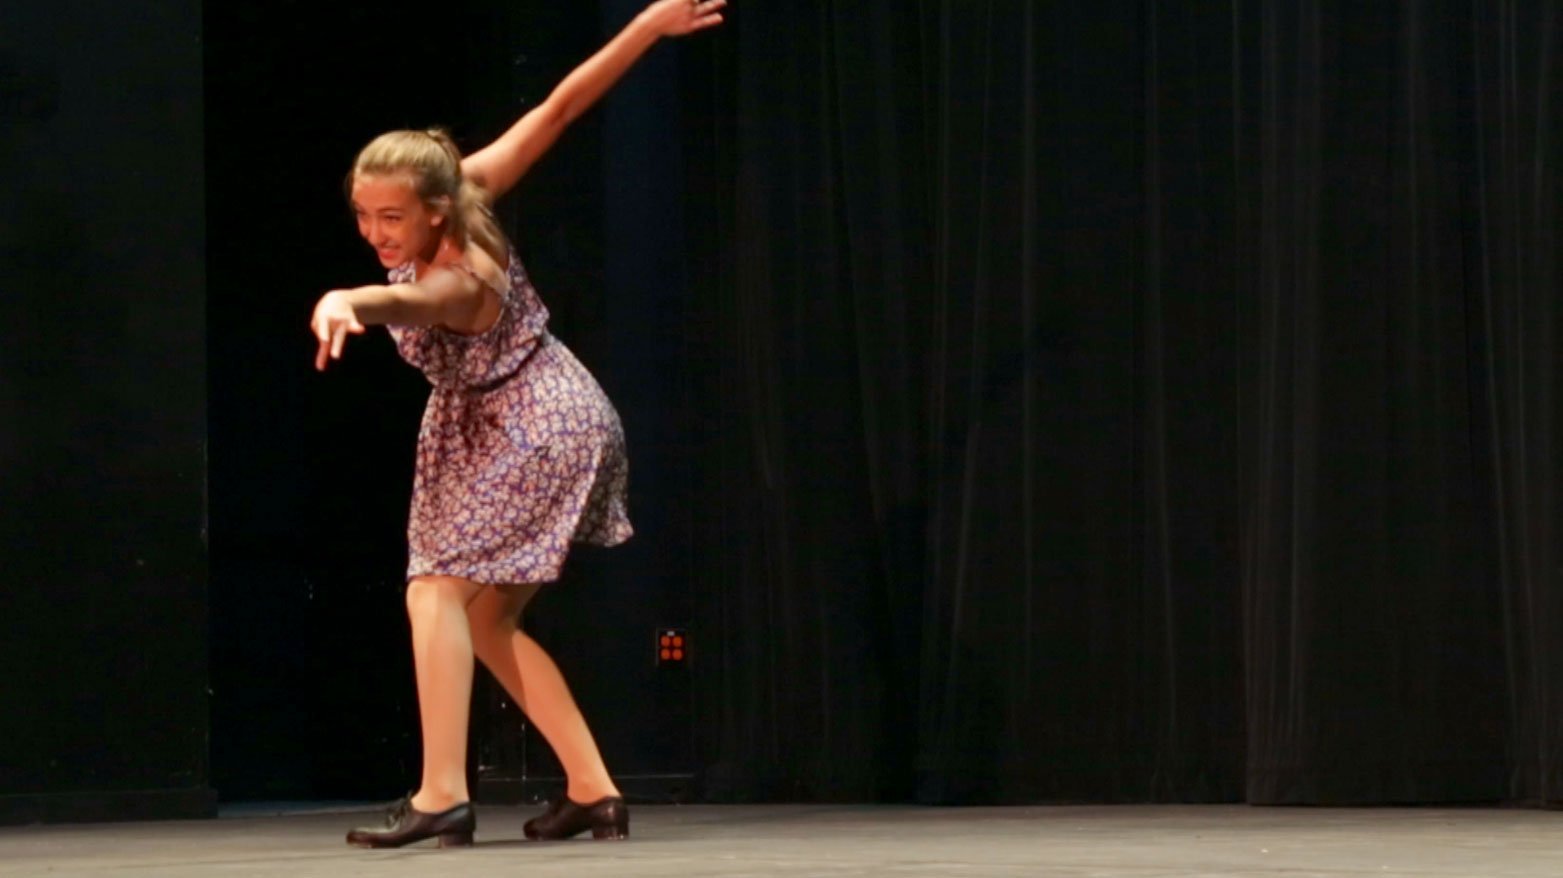 A student is doing a creative dance on stage